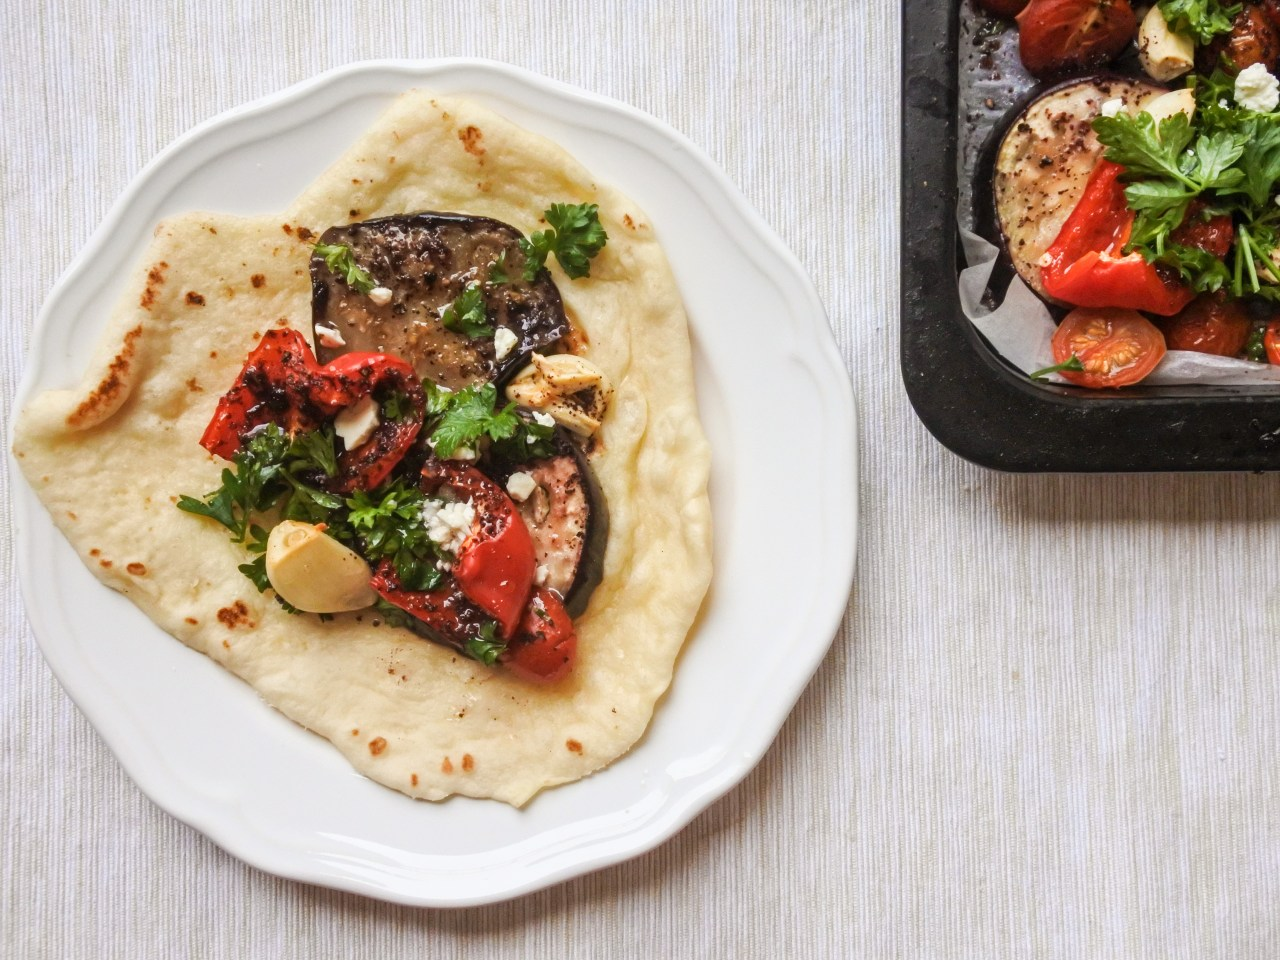 Sumac roasted vegetables garnished with feta and chopped parsley on naan bread